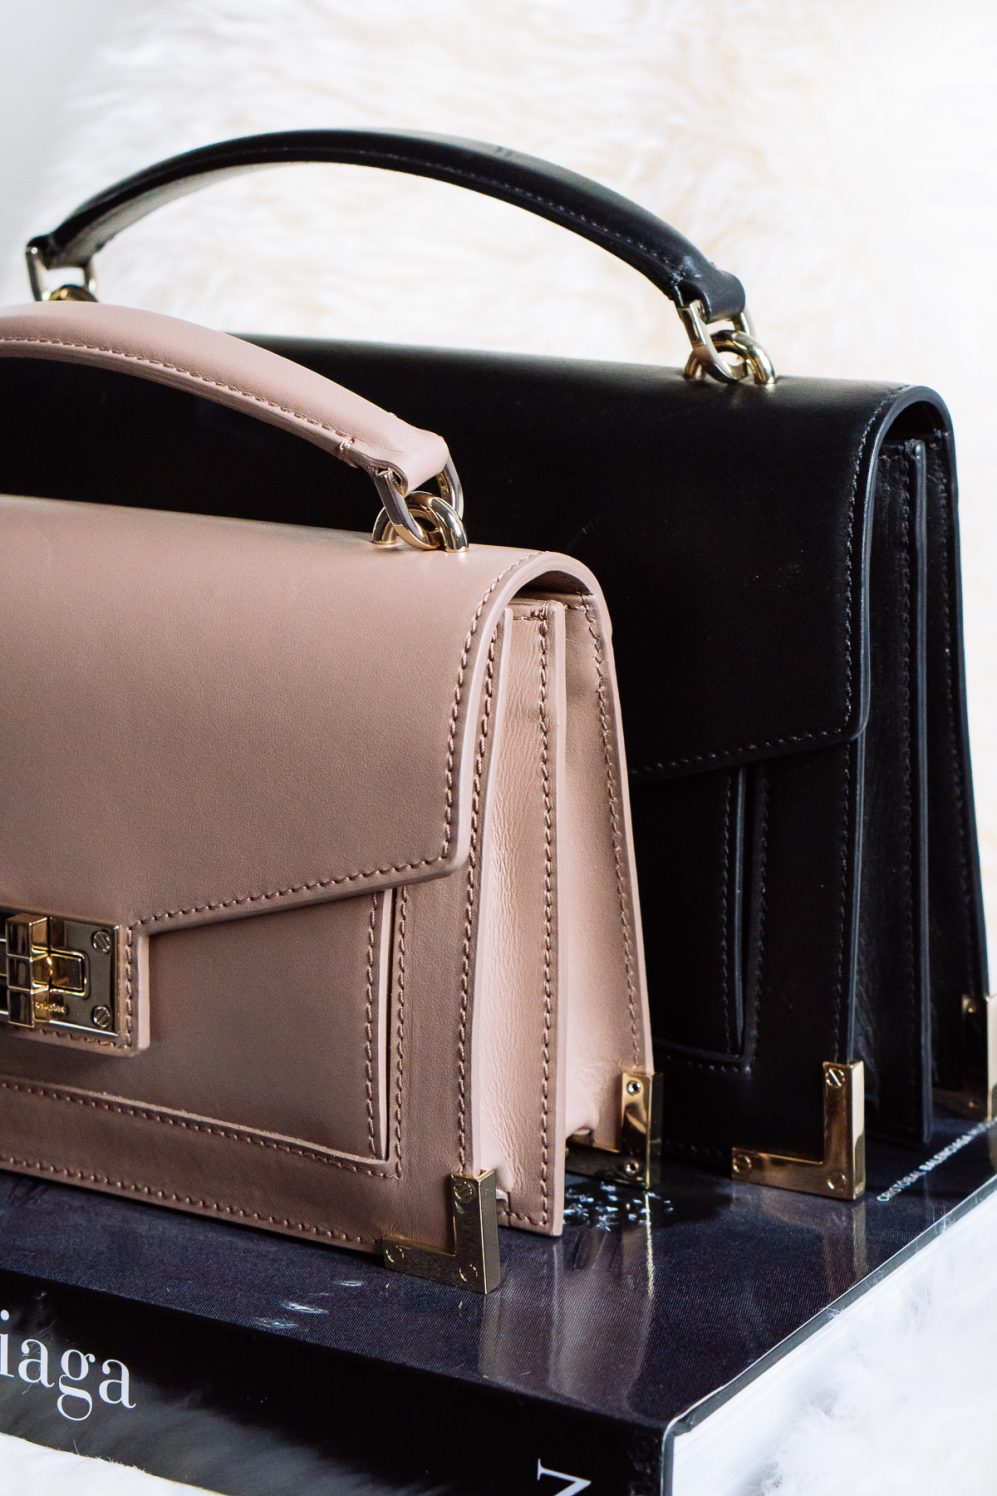 Night Bag Introducing: The Emily Bag By The Kooples - Purseblog